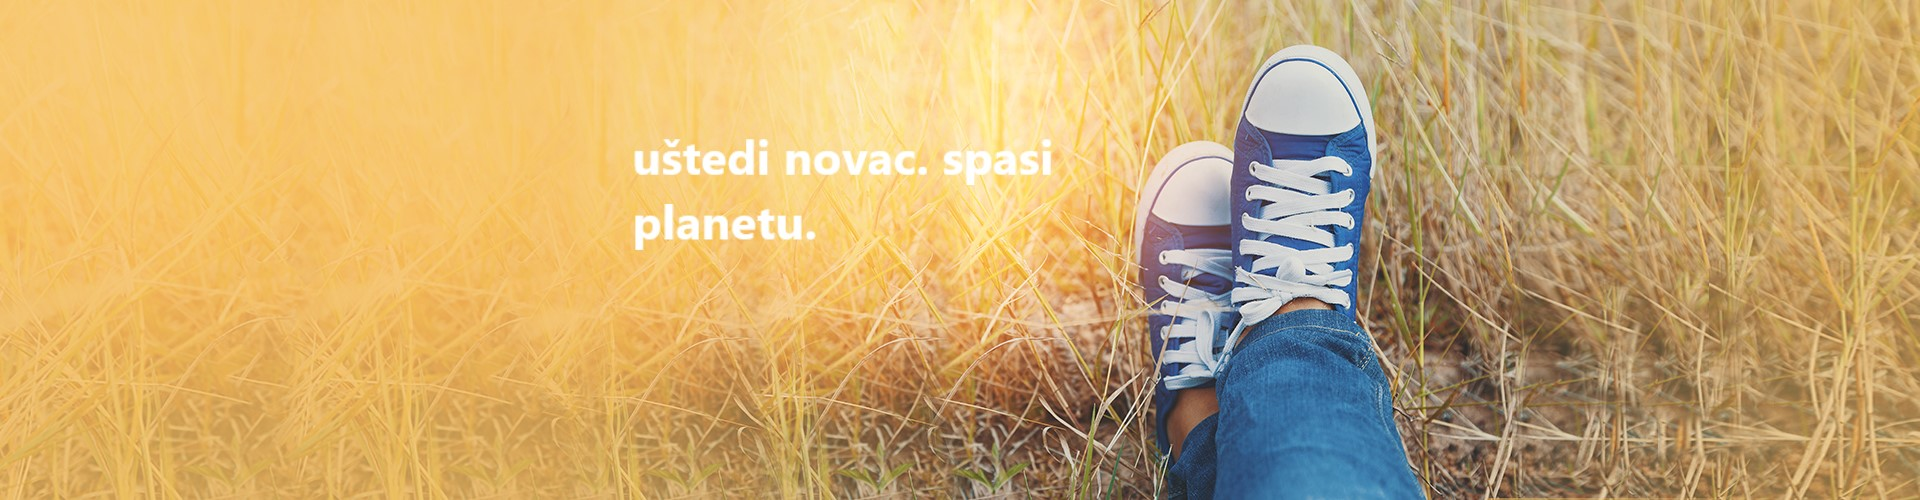 Website-Slider-with-Shoes-v3 – kopija (2